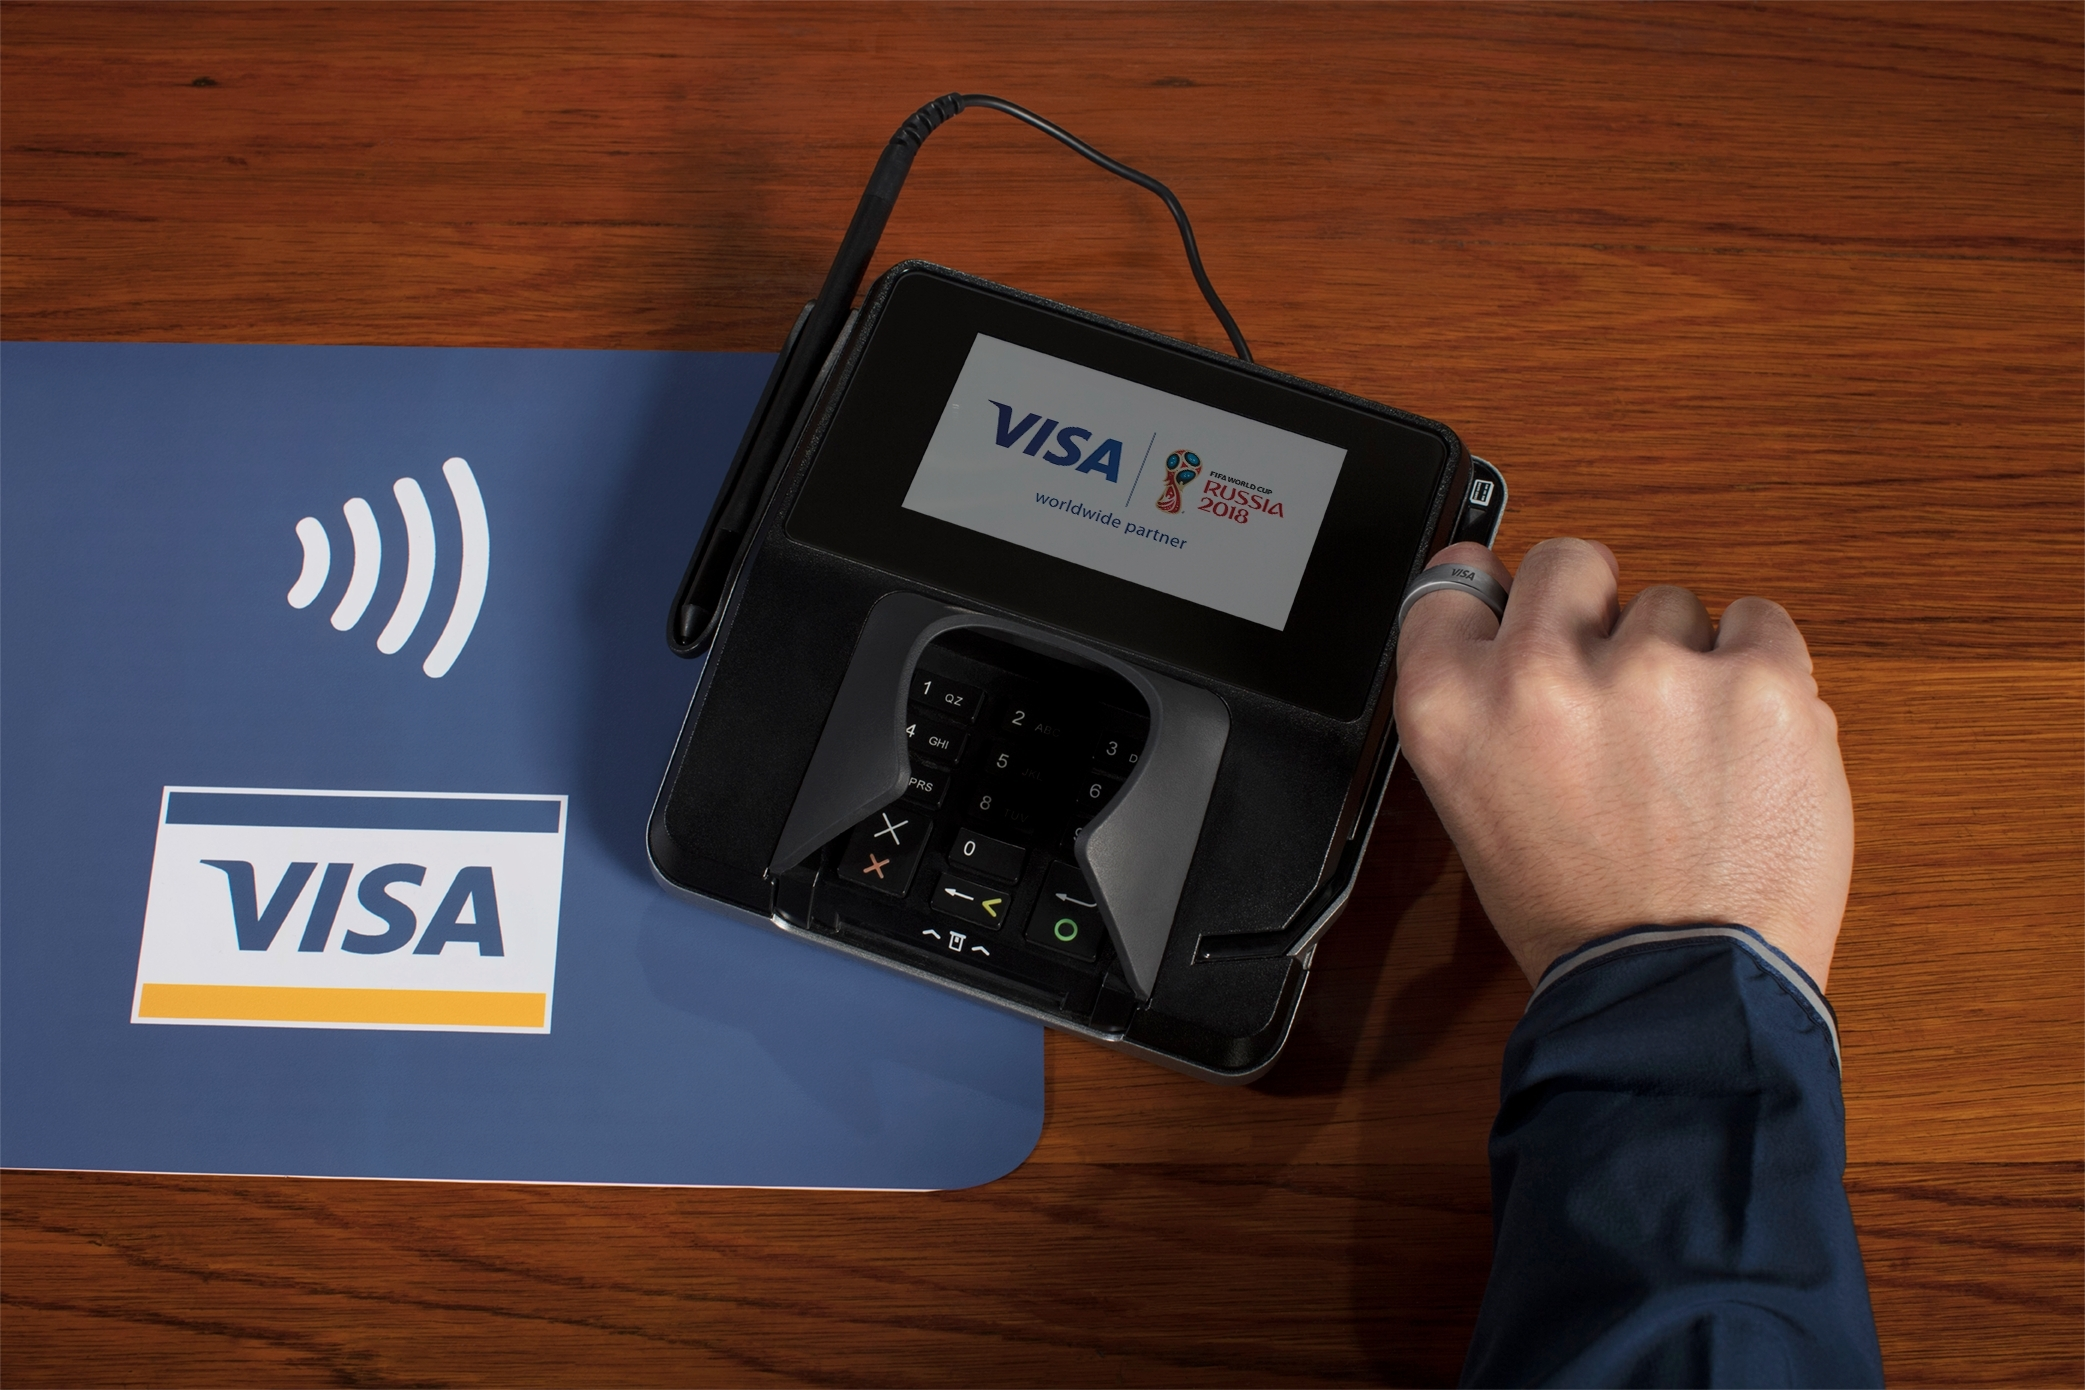 Visa Data Shows One Fifth of Purchases at 2018 FIFA World